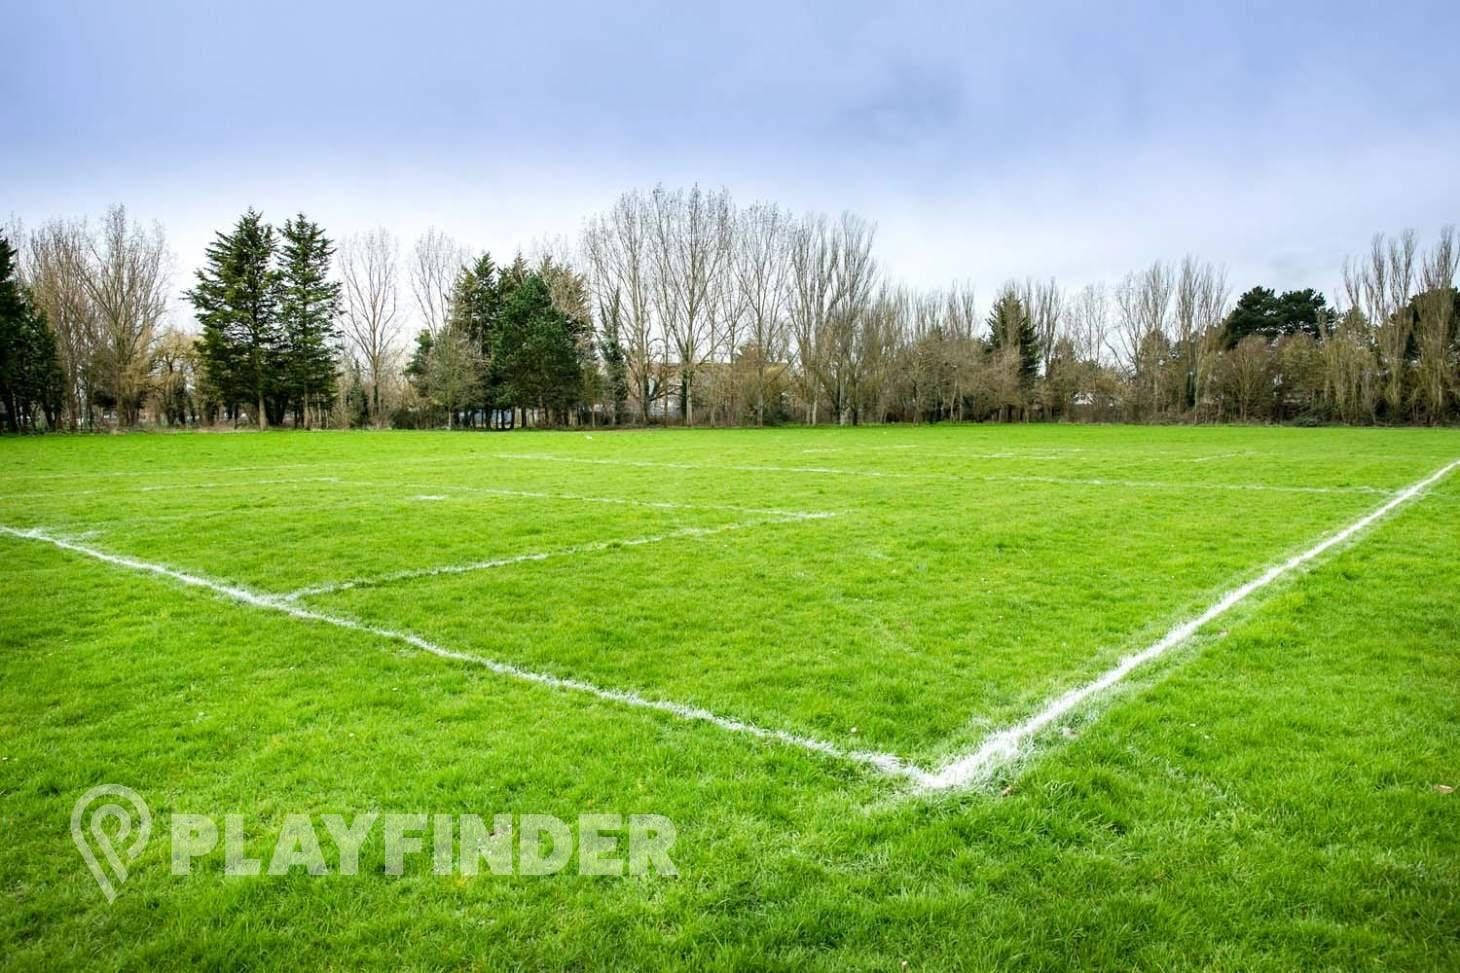 Rectory Park 11 a side junior | Grass football pitch